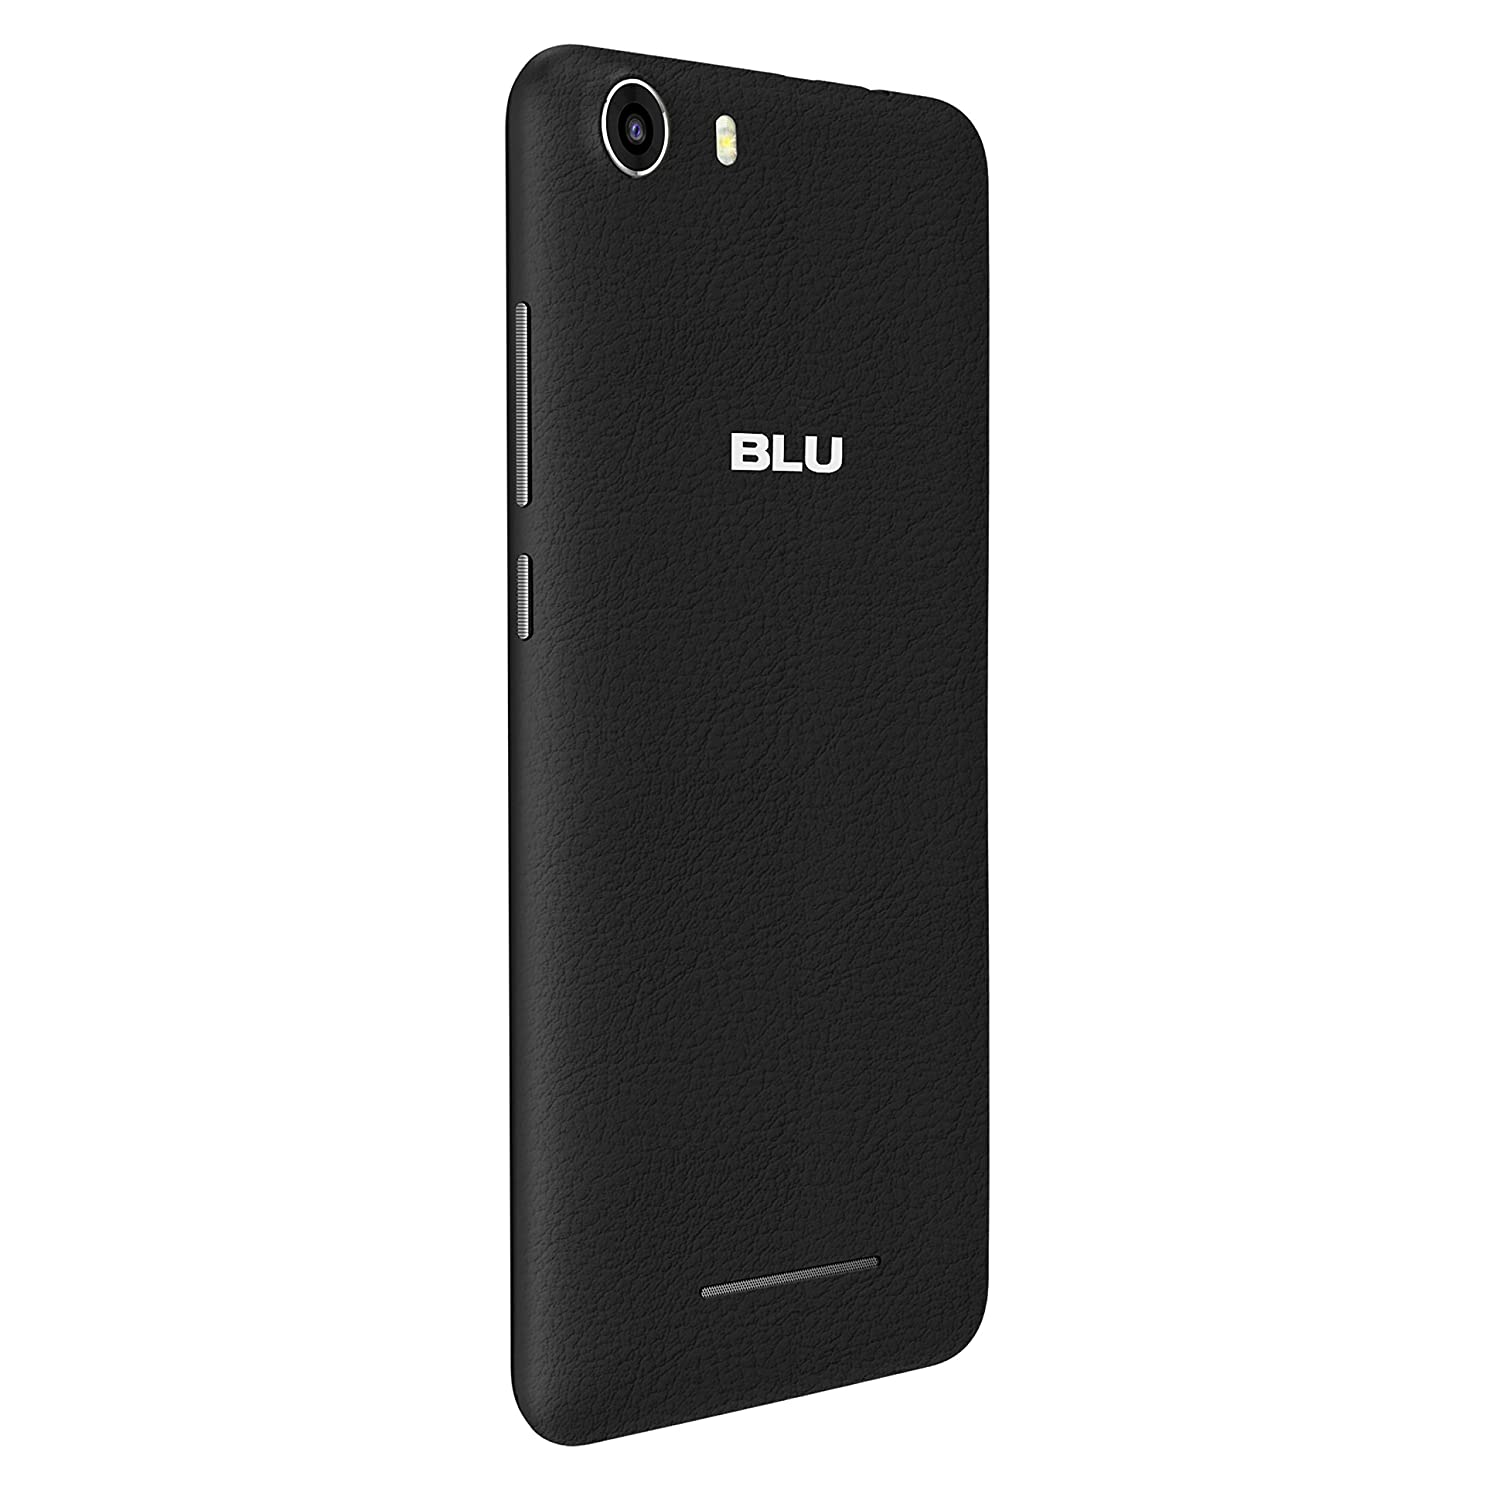 Amazon.com: Smartphone BLU modelo Advance 5.0, libre y con ...